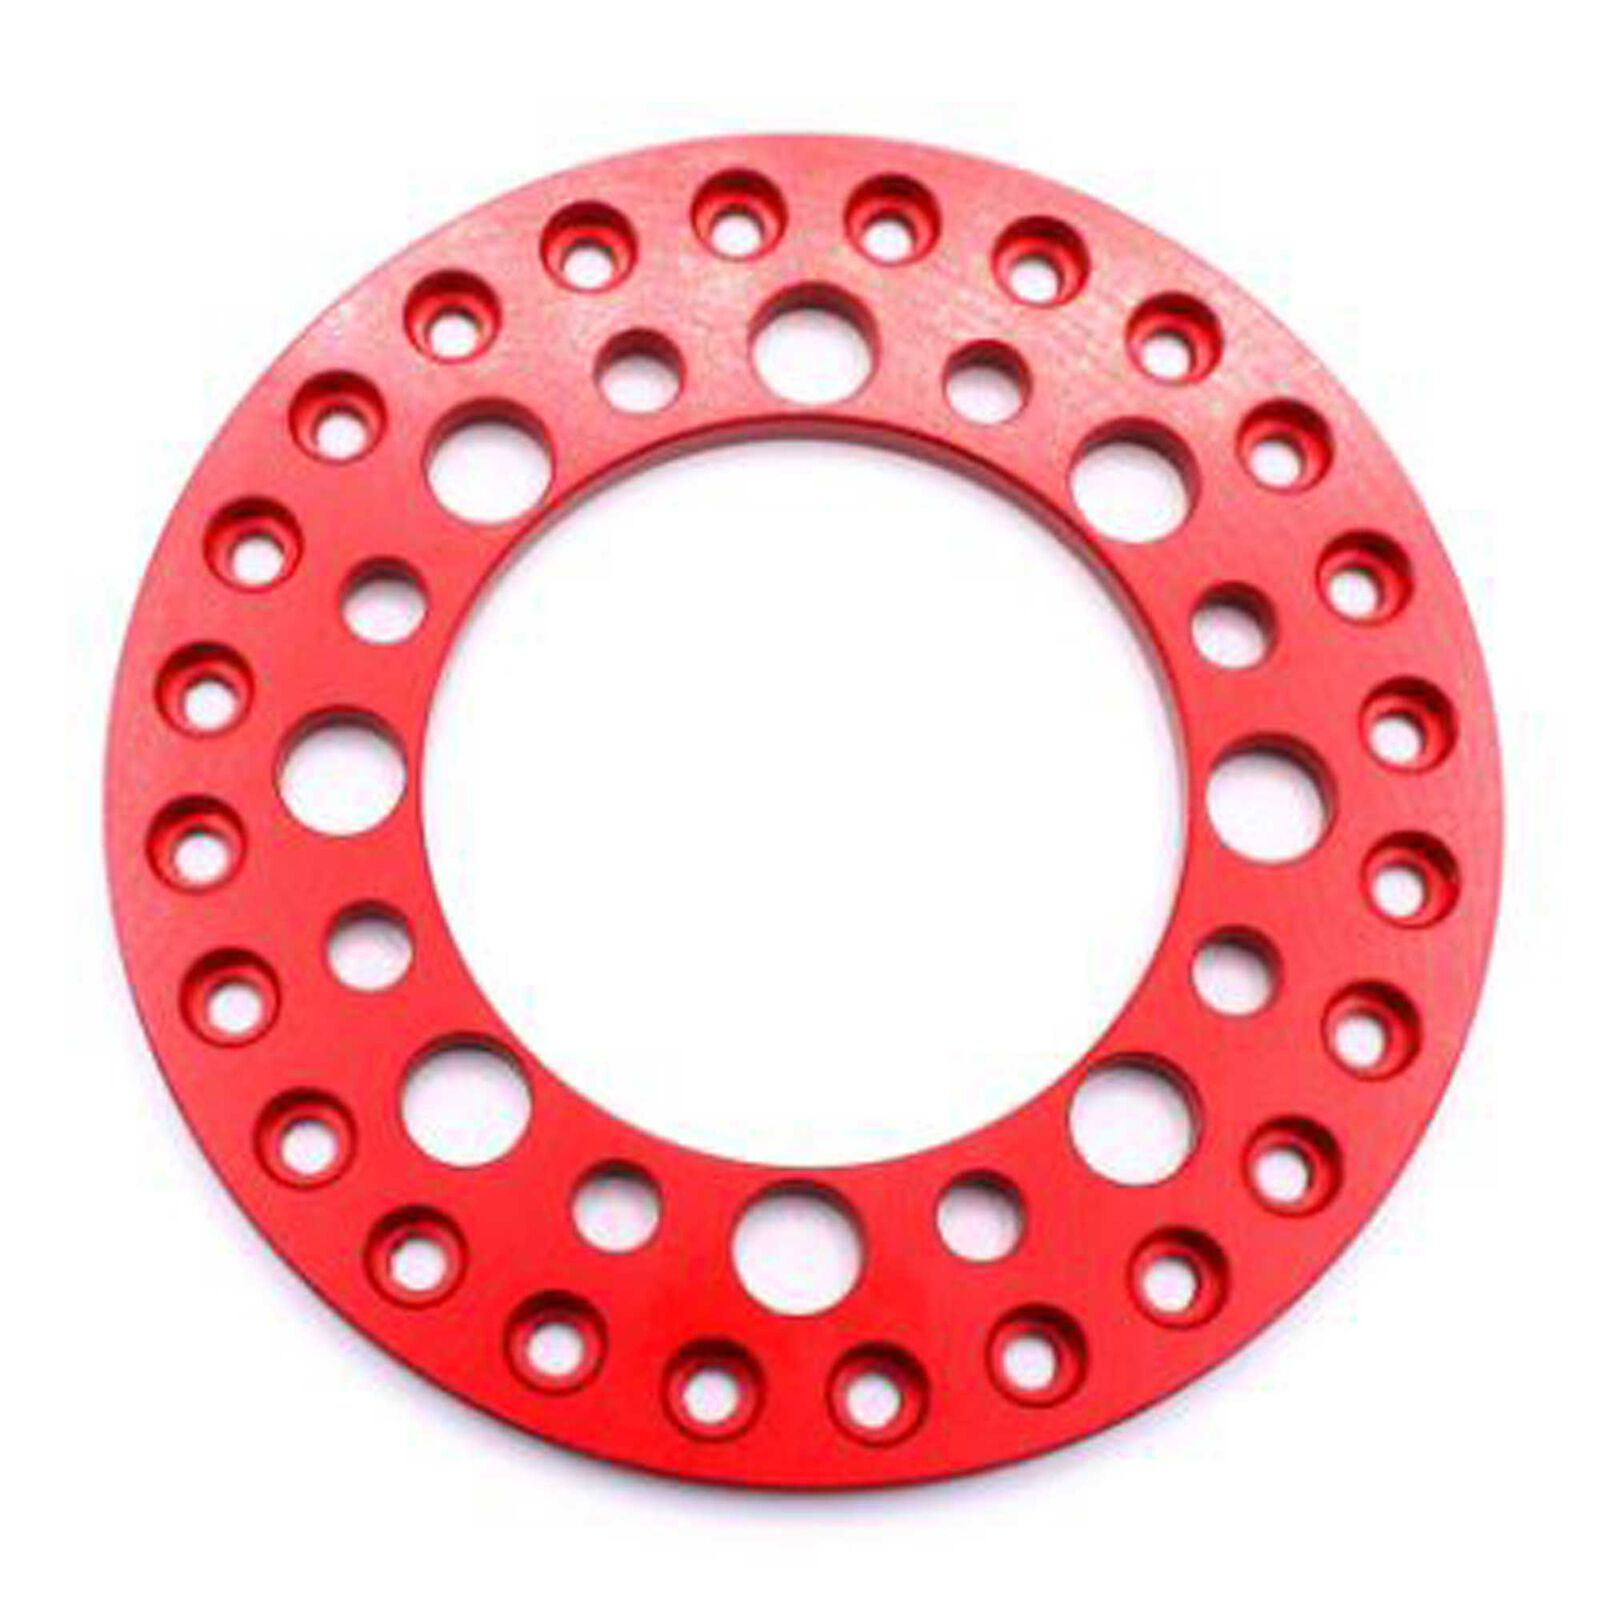 1.9 Holy Beadlock Red Anodized